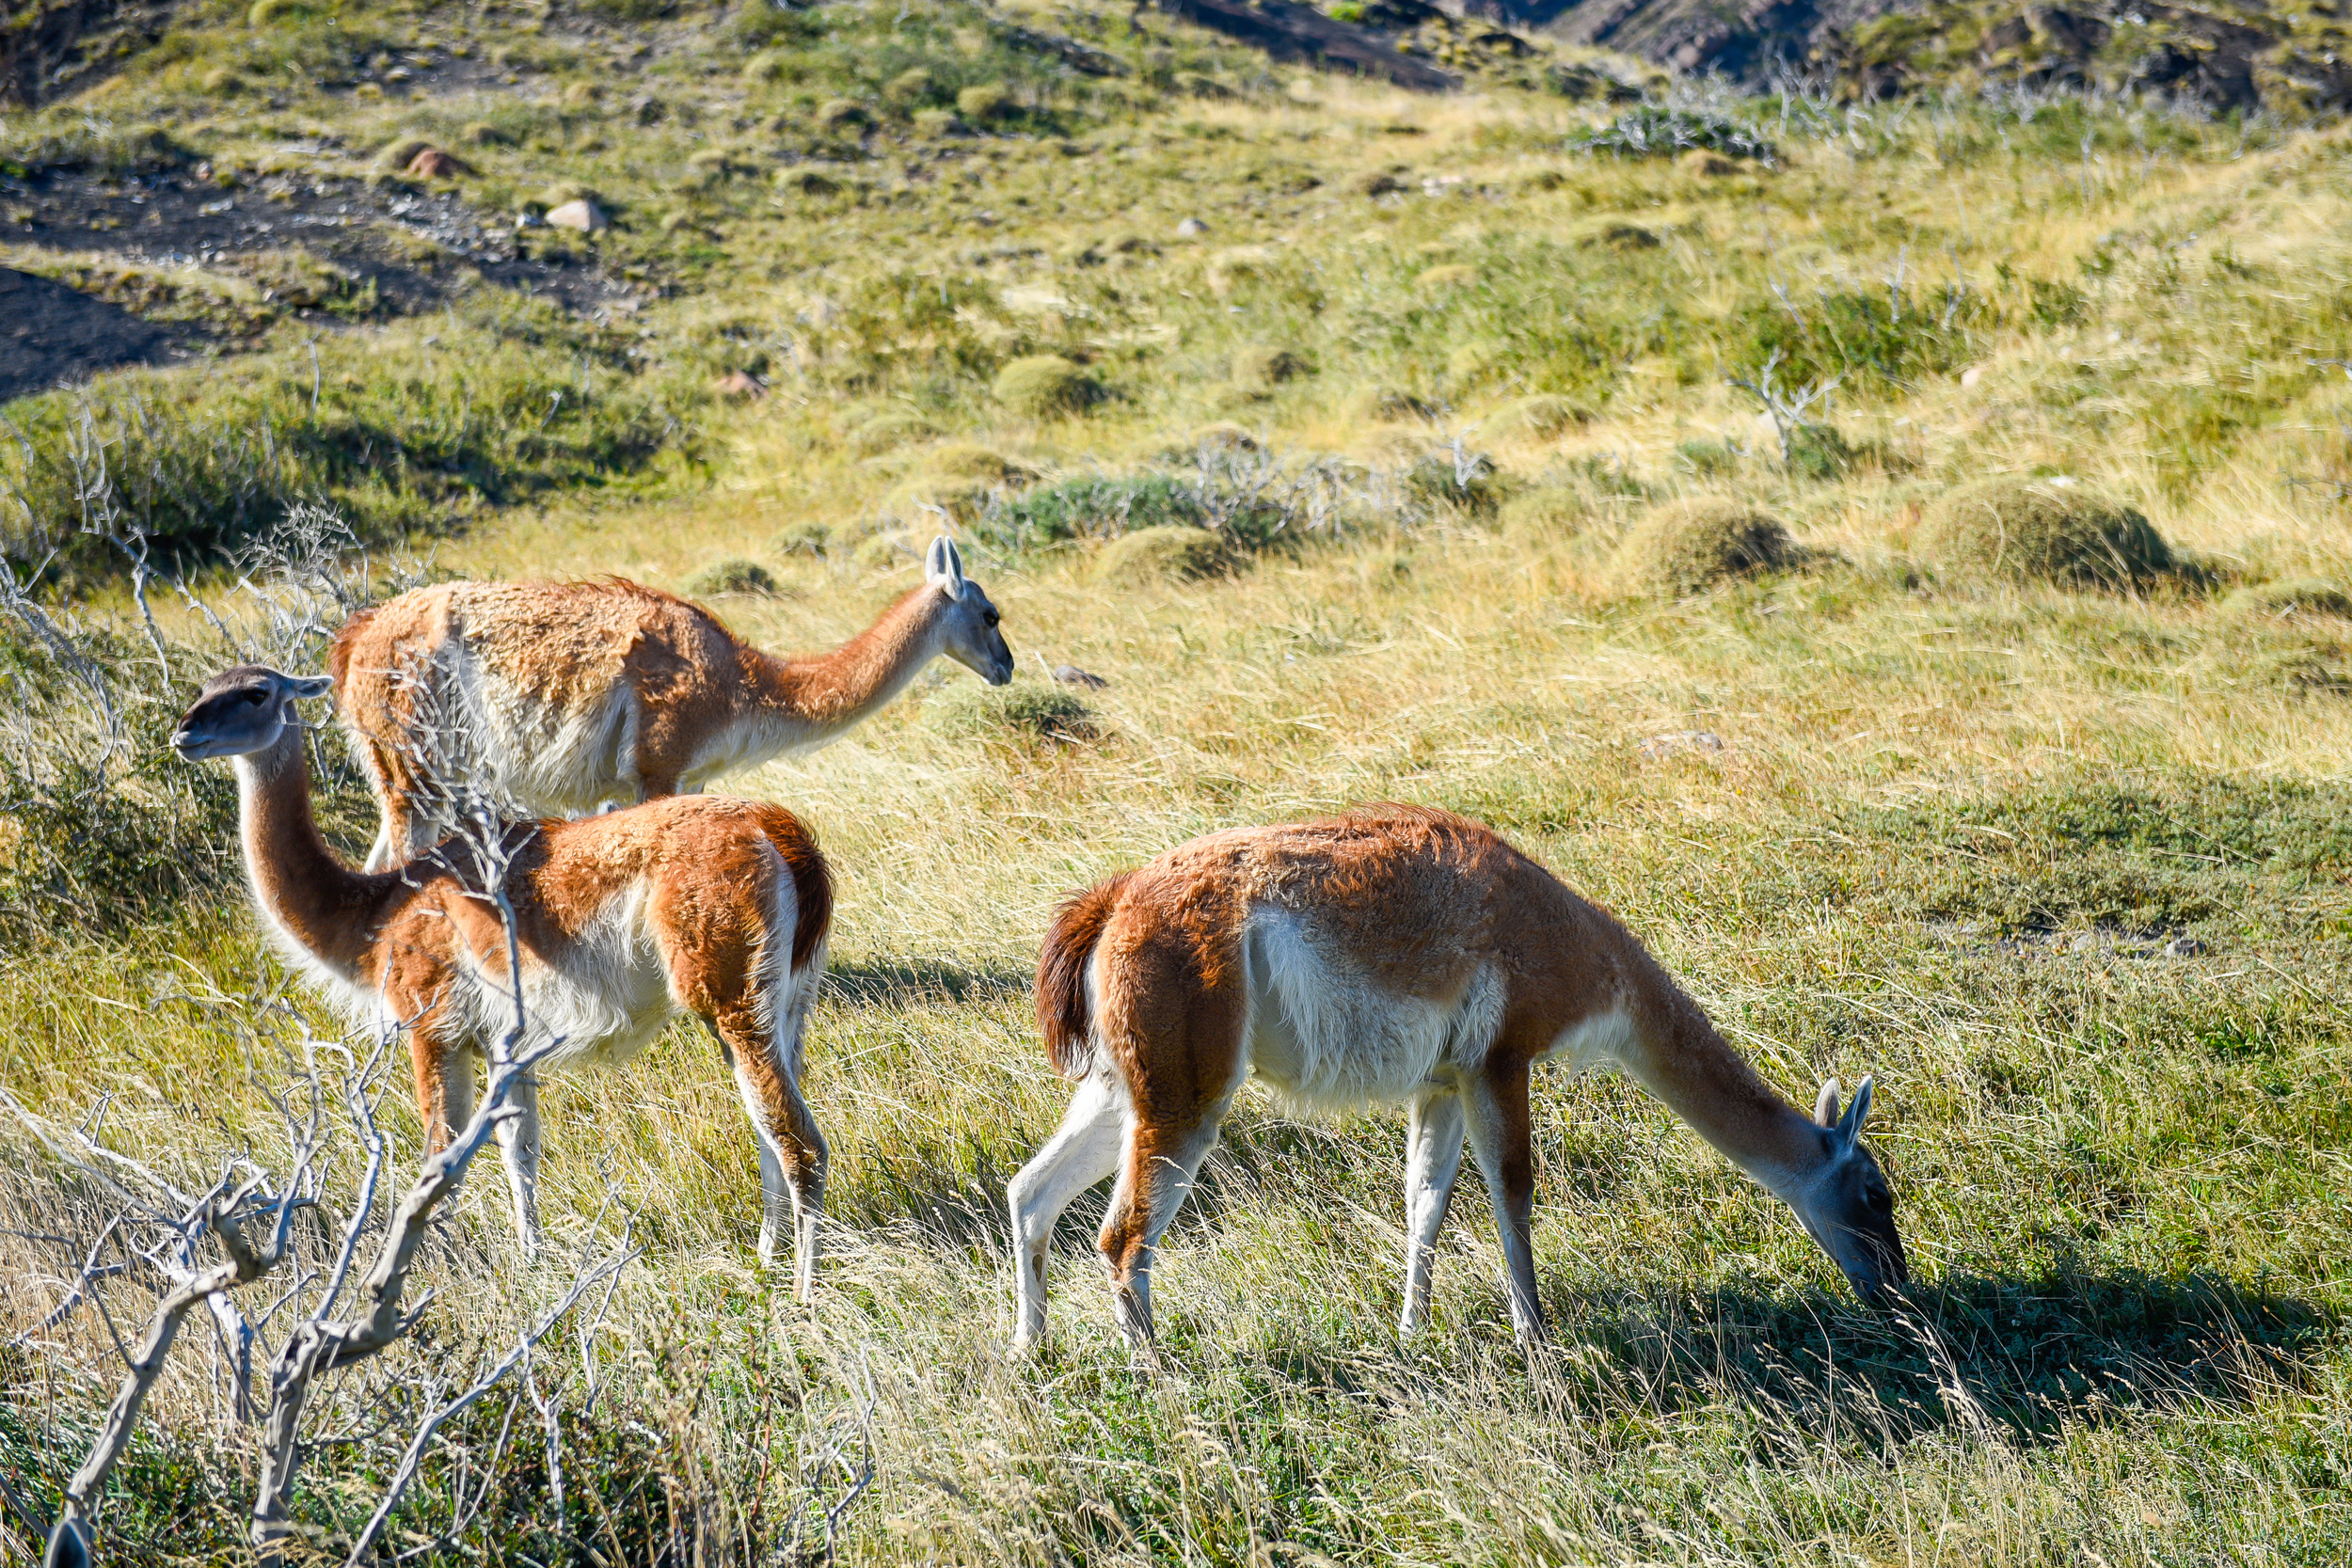 The guanaco ( Lama guanicoe ) is a camelid native to South America that stands between 1.0 and 1.2 m (3 ft 3 in and 3 ft 11 in) at the shoulder and weighs about 90 kg (200 lb).